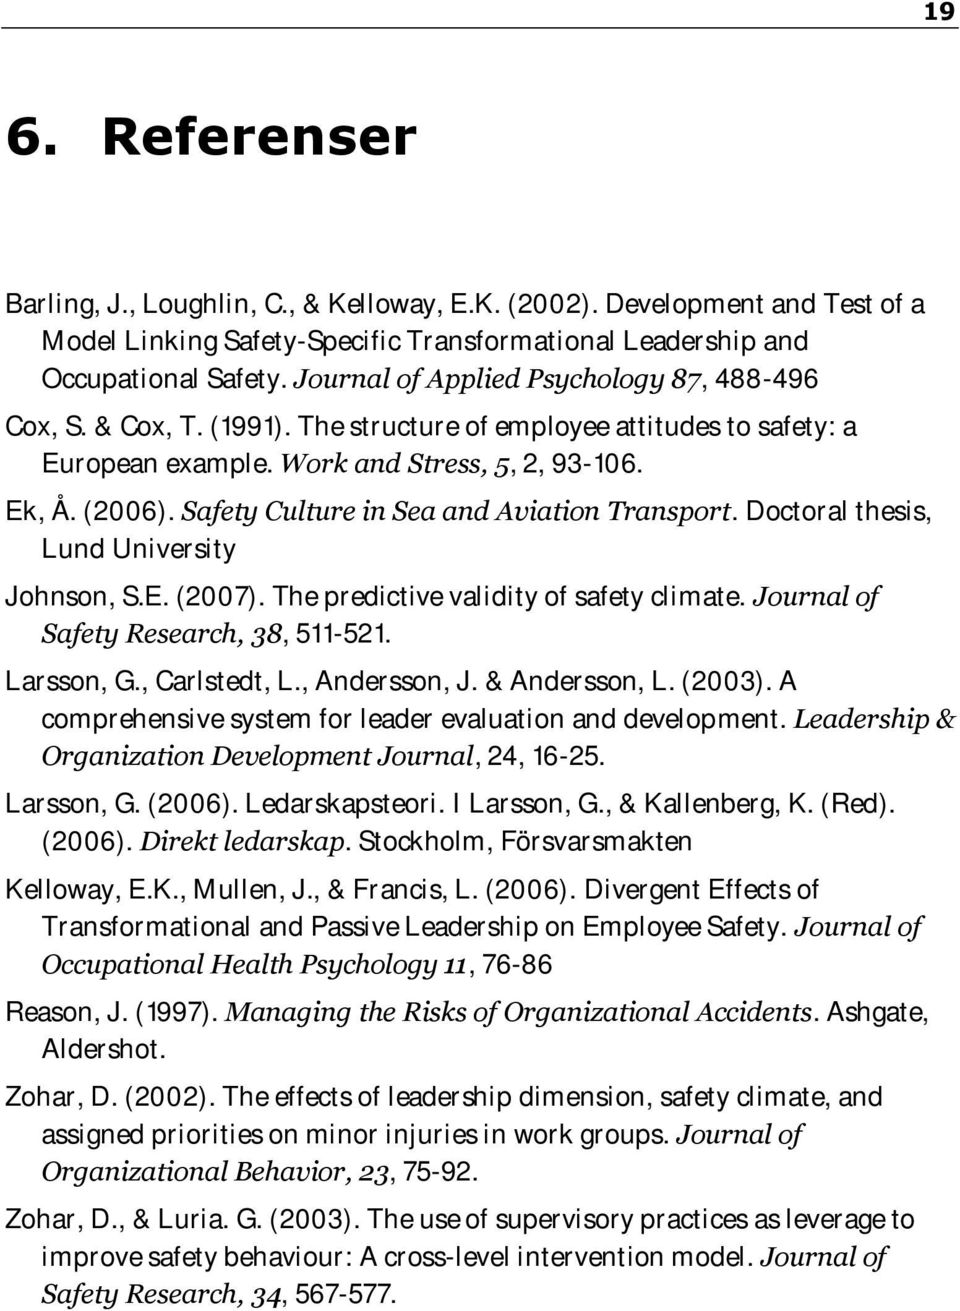 Safety Culture in Sea and Aviation Transport. Doctoral thesis, Lund University Johnson, S.E. (2007). The predictive validity of safety climate. Journal of Safety Research, 38, 511-521. Larsson, G.